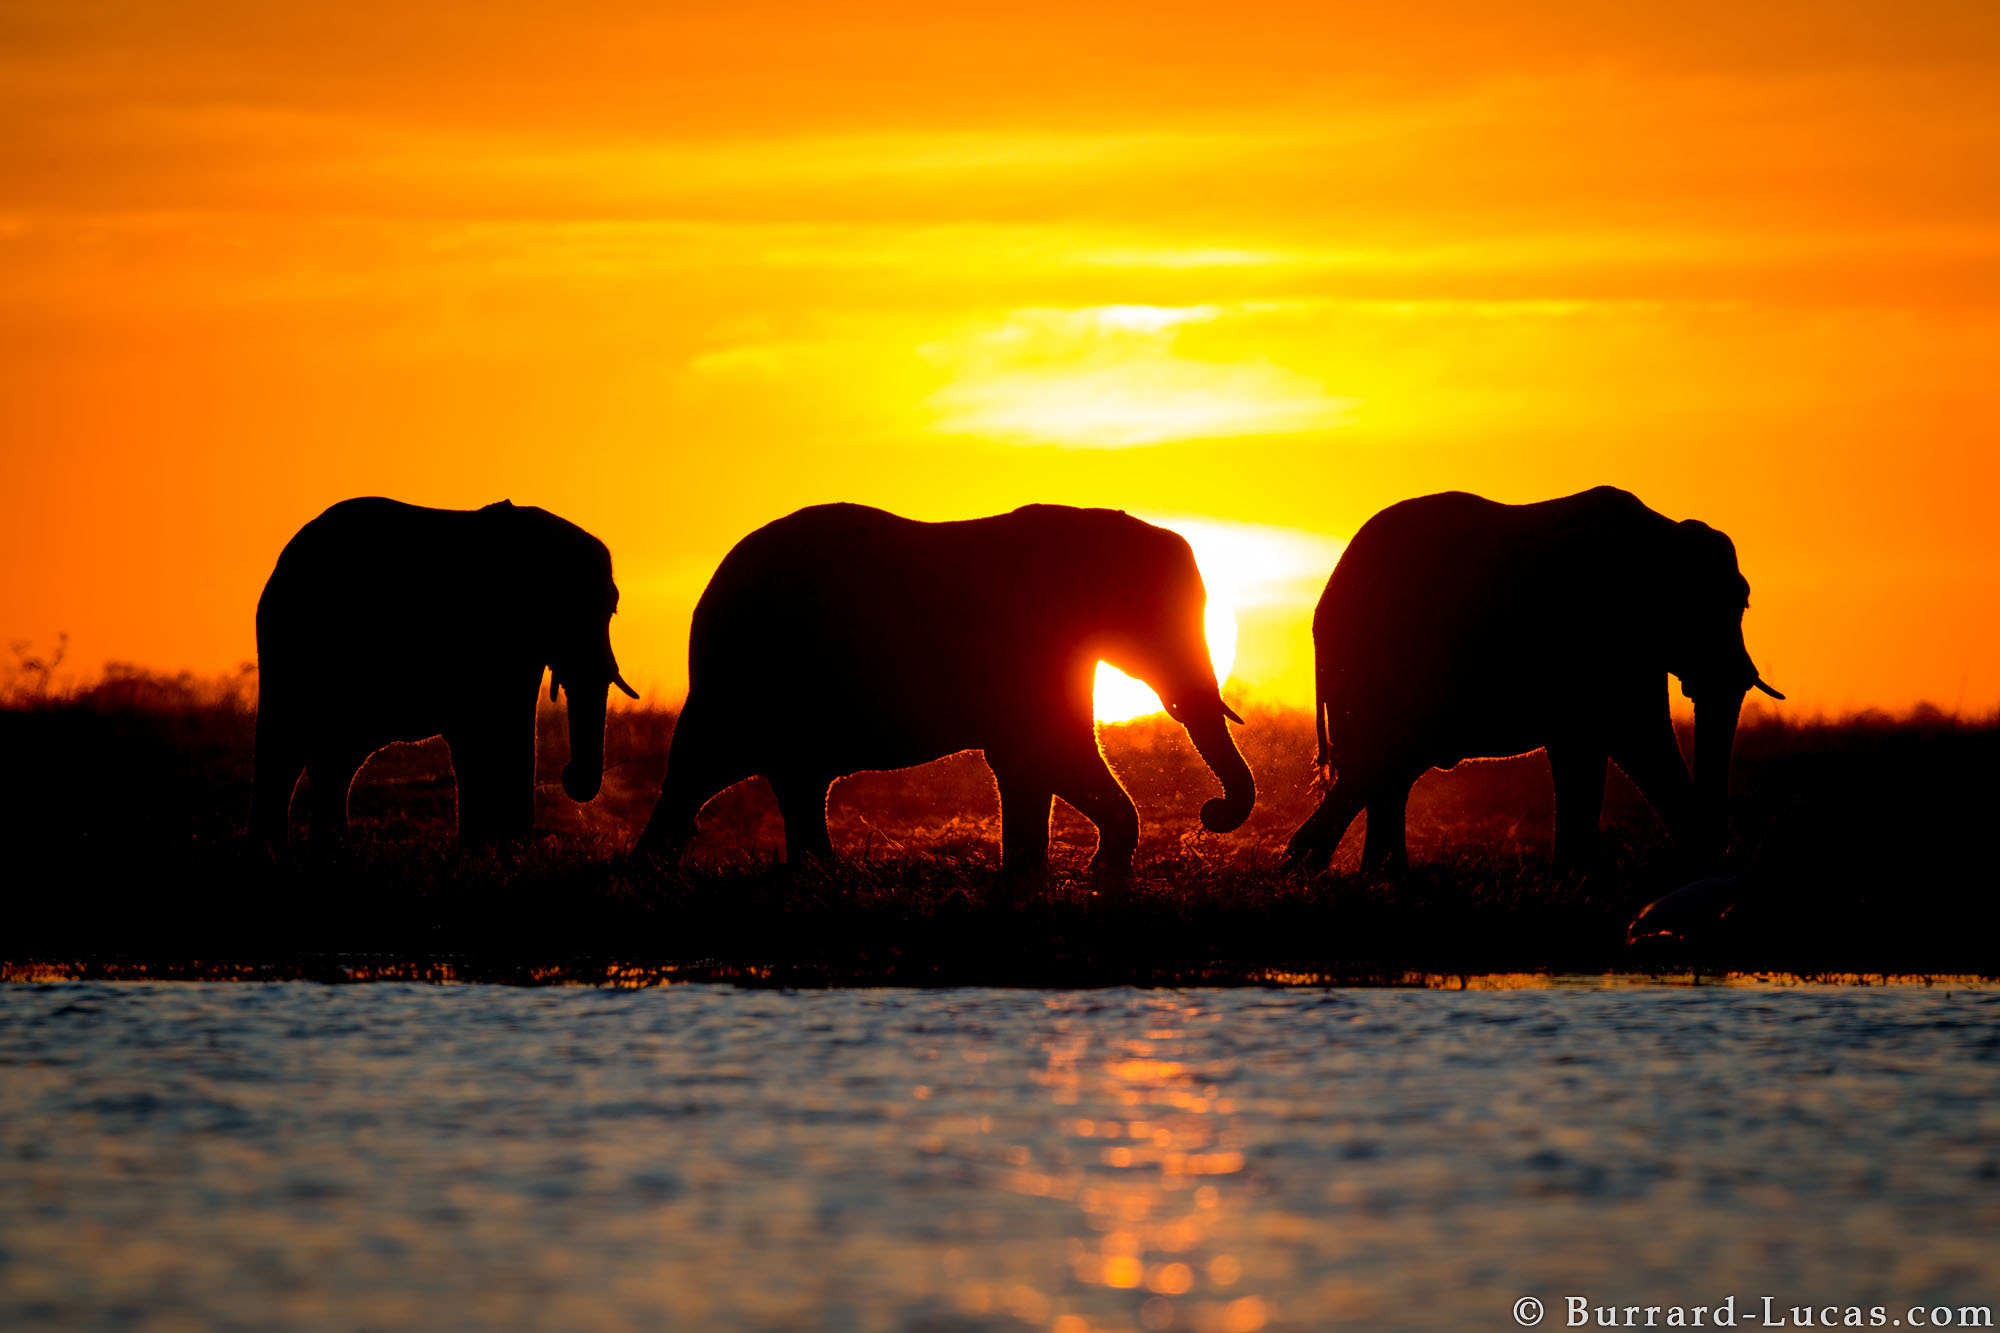 Elephant Sunset Burrard Lucas Photography